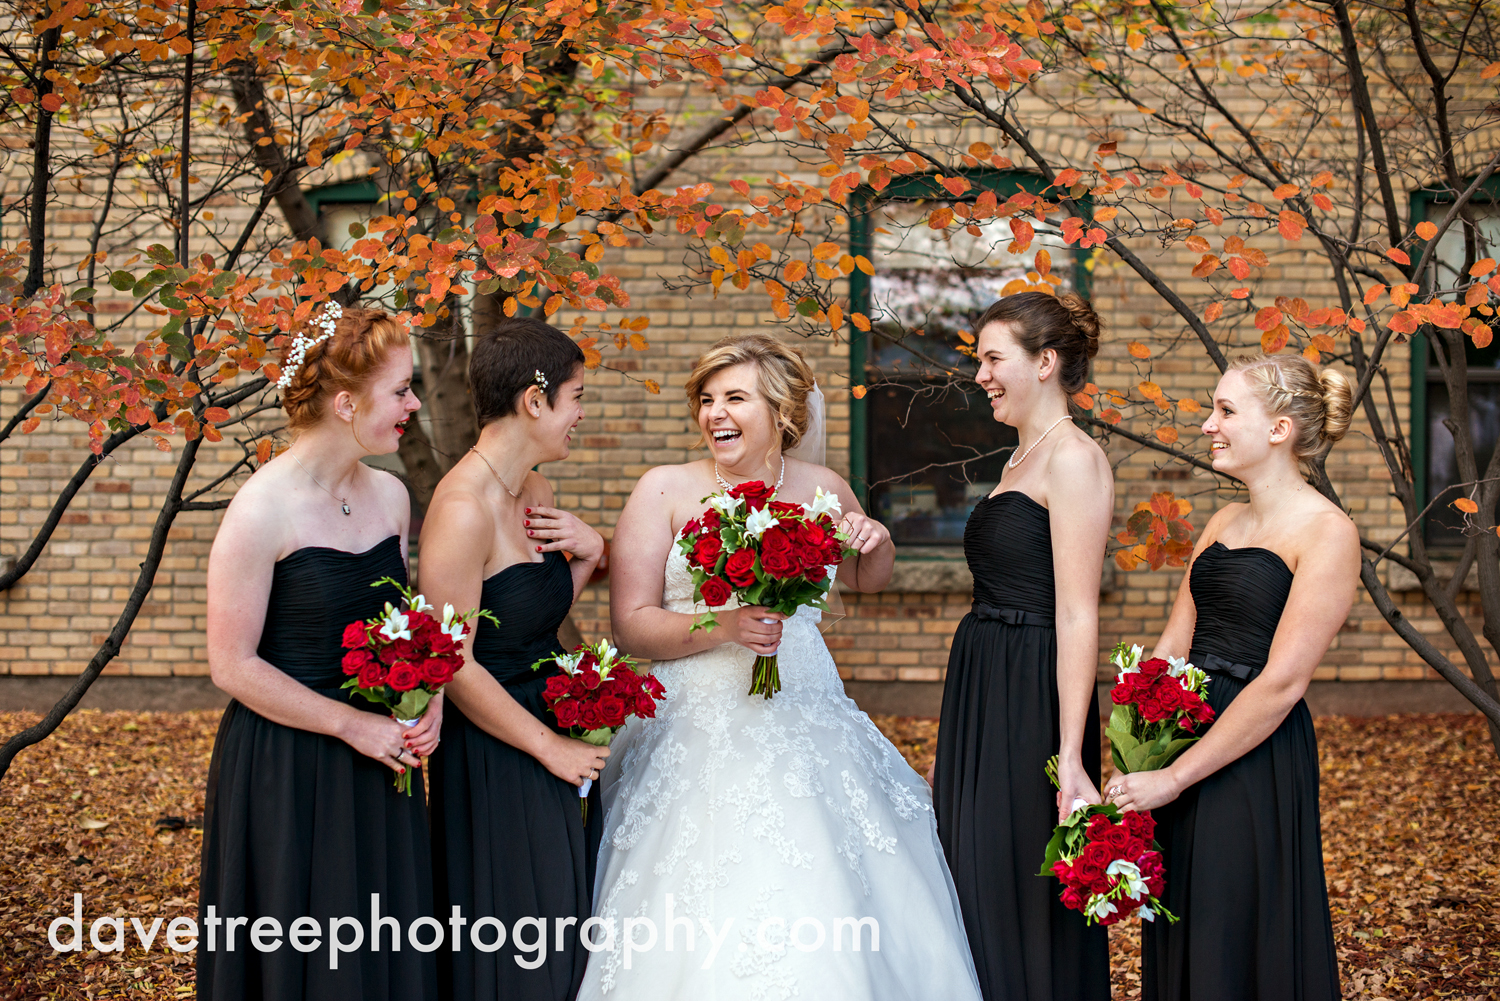 holland_wedding_photographer_54.jpg